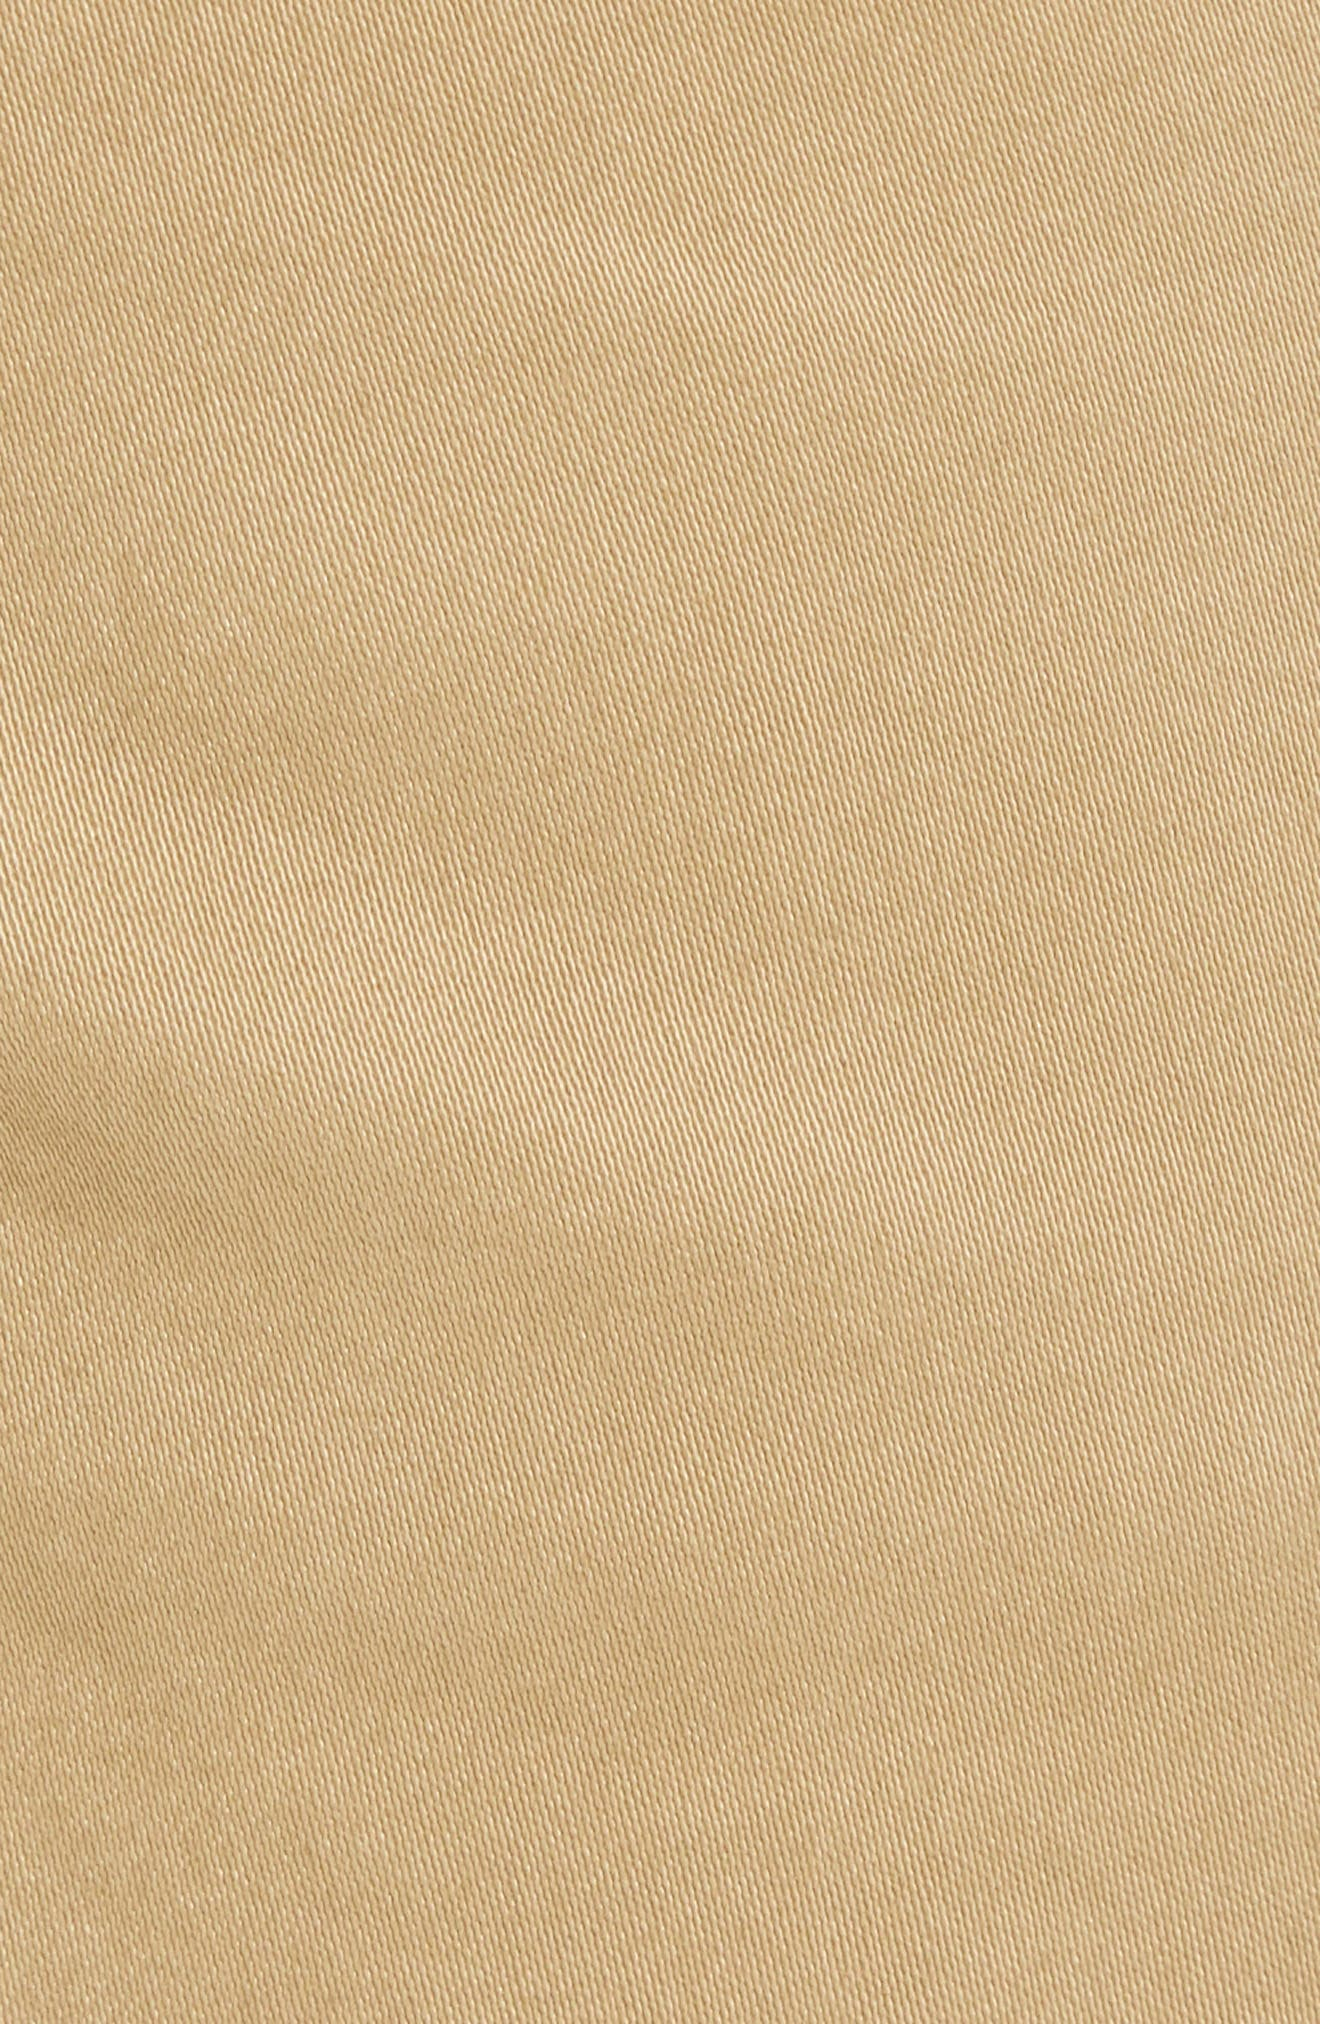 Stretch Chino Pants,                             Alternate thumbnail 5, color,                             BROWN